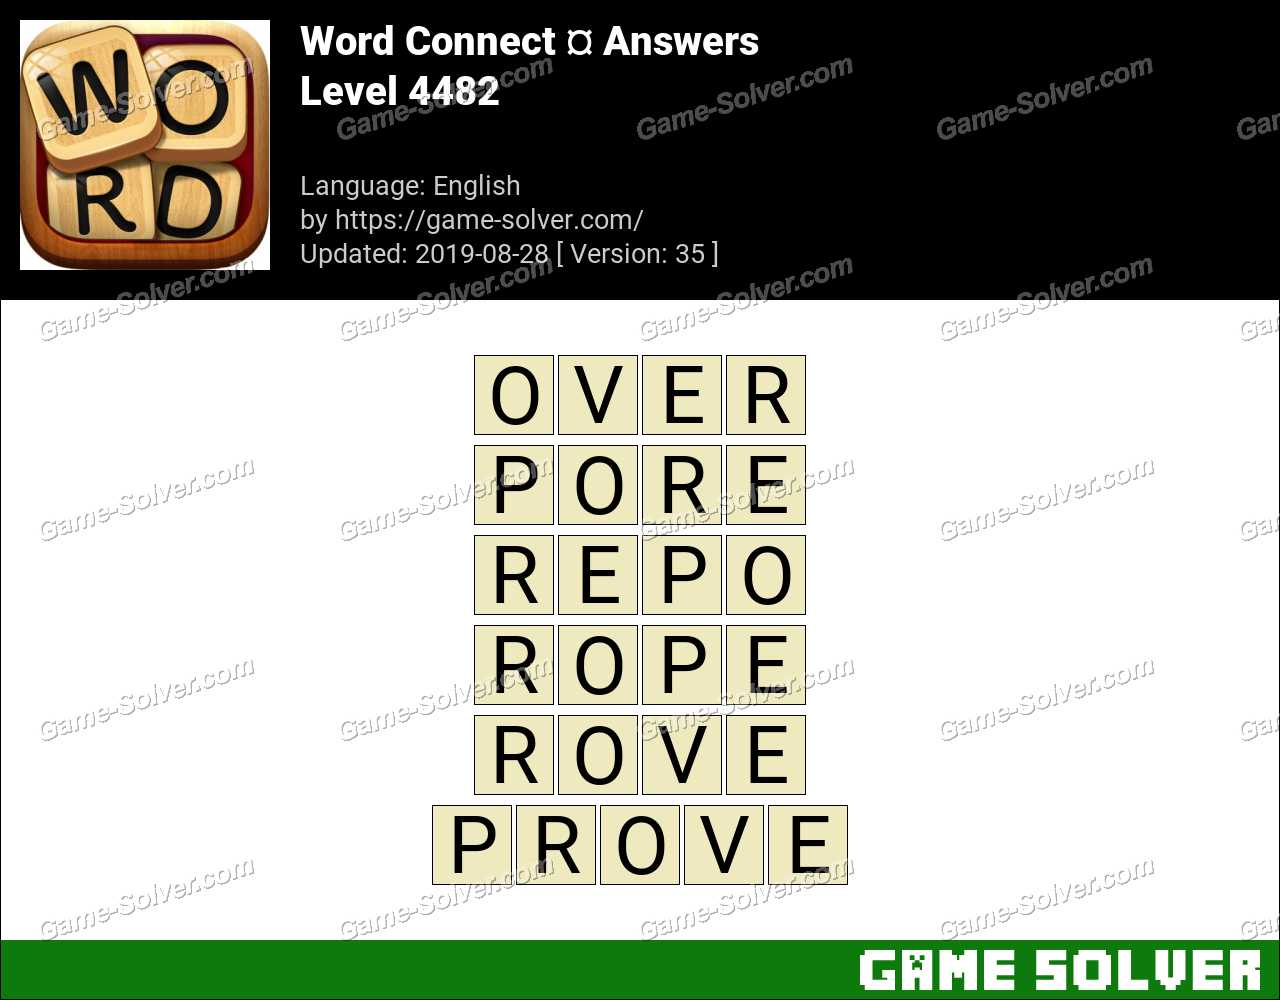 Word Connect Level 4482 Answers